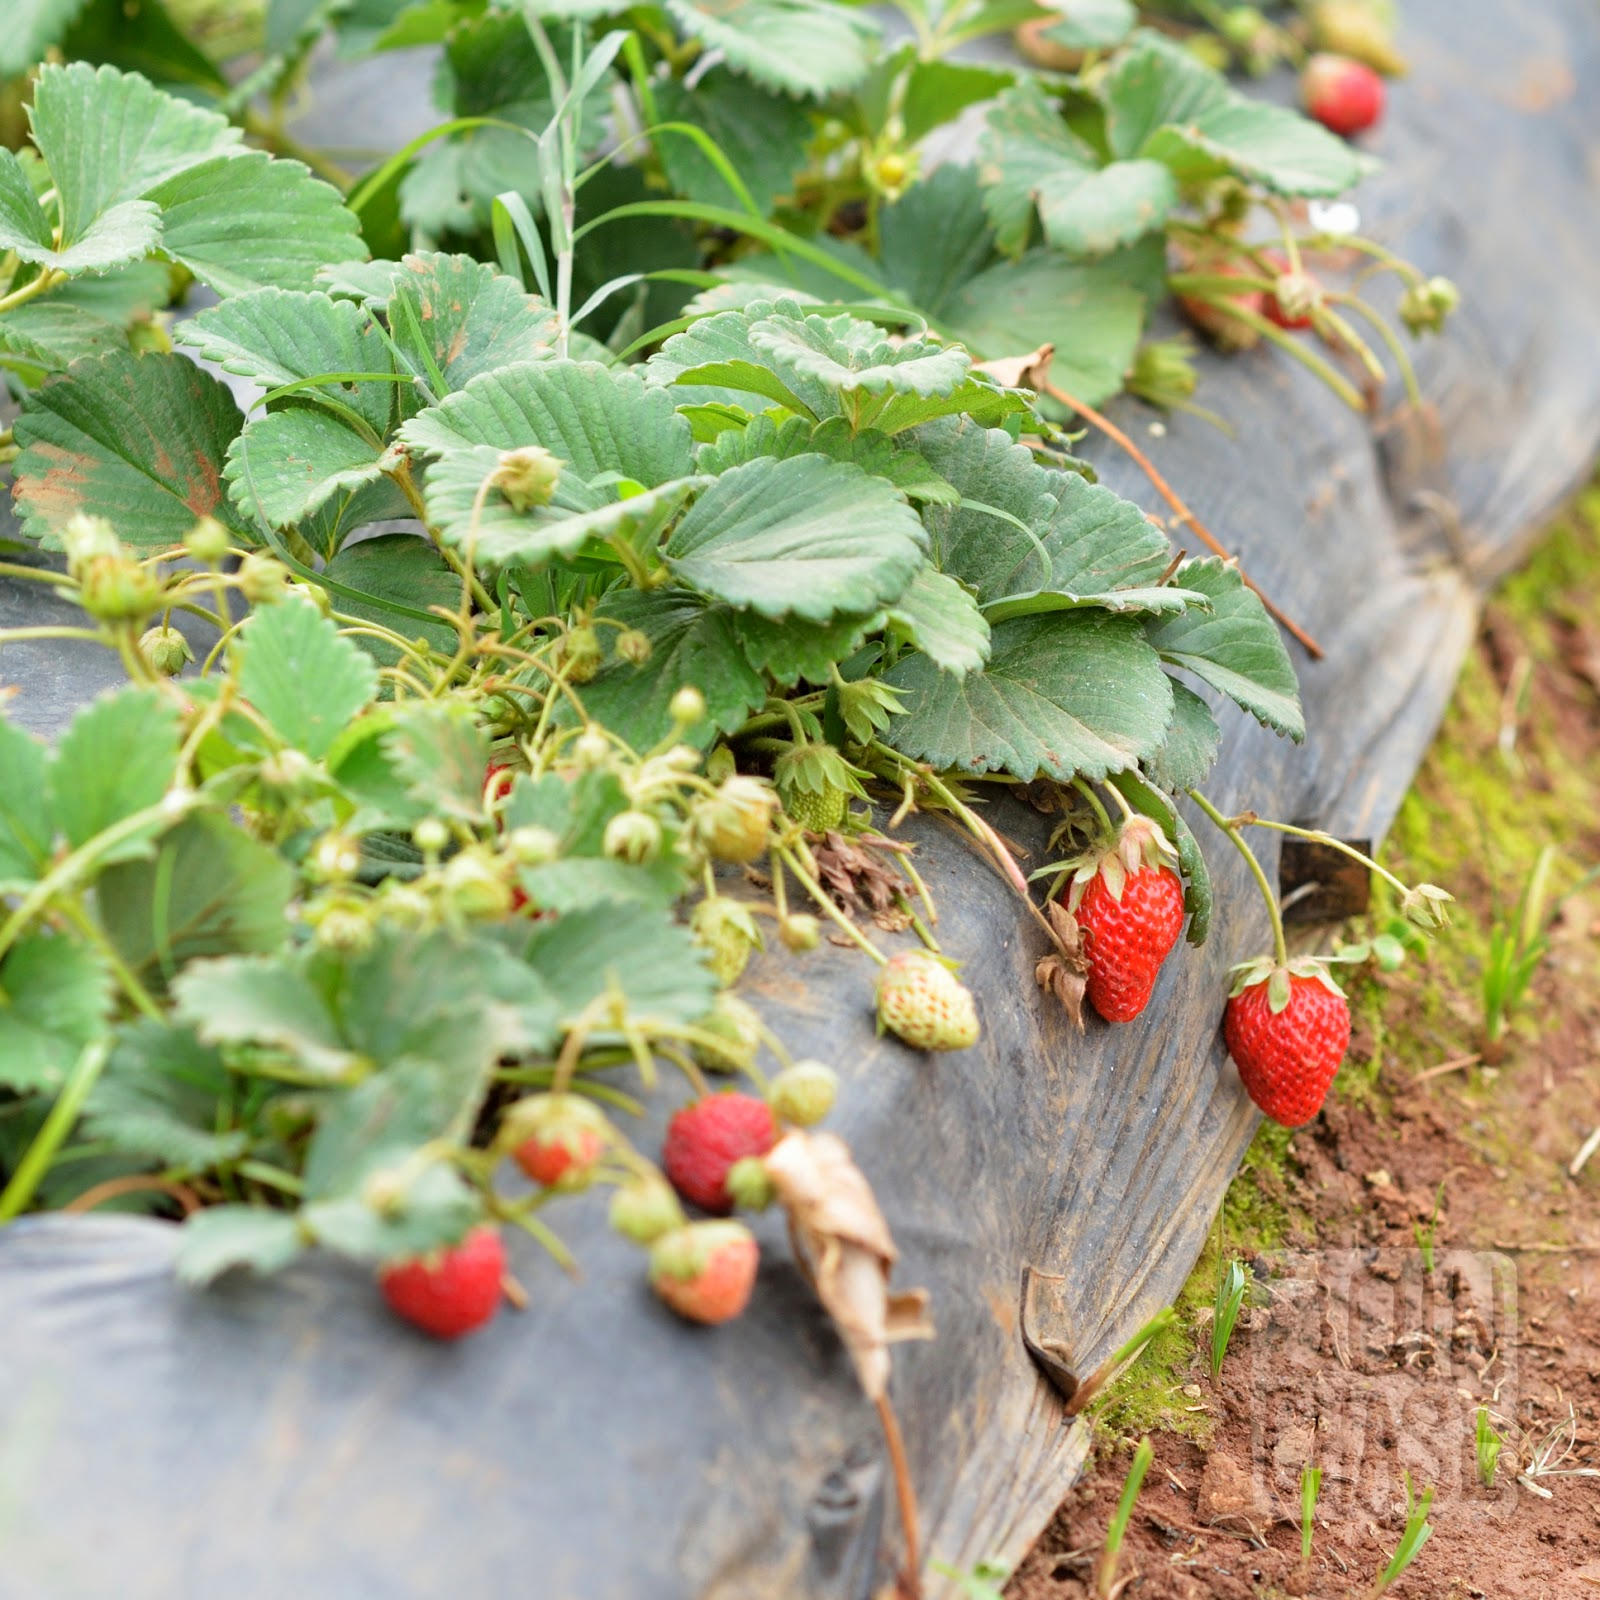 Strawberries growing at a farm near Pyin Oo Lwin, Myanmar.